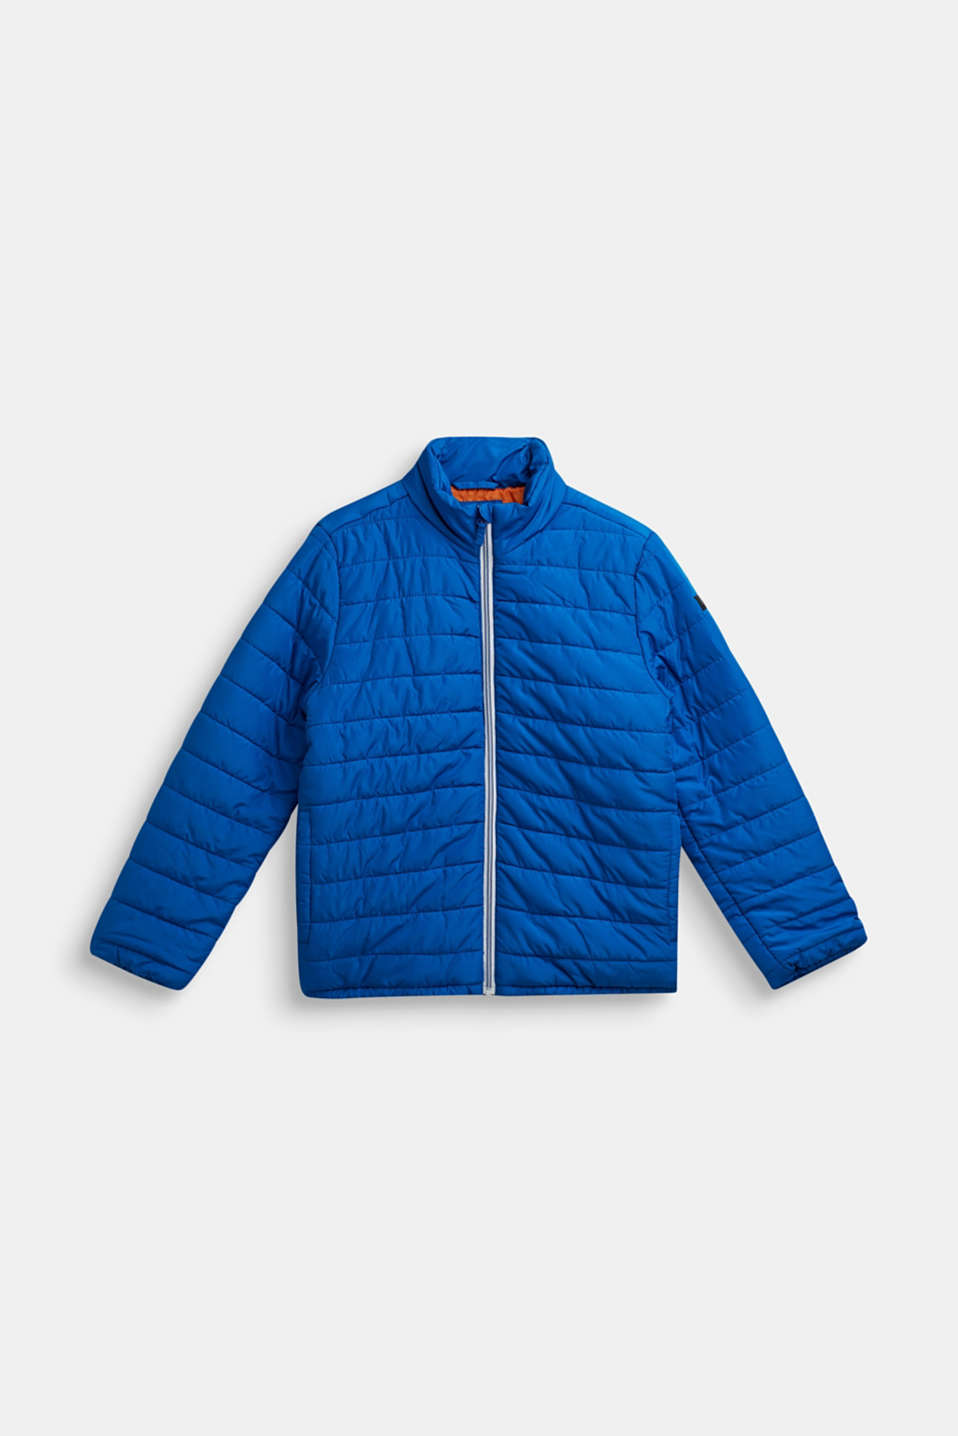 Jackets outdoor woven, LCBRIGHT BLUE, detail image number 0